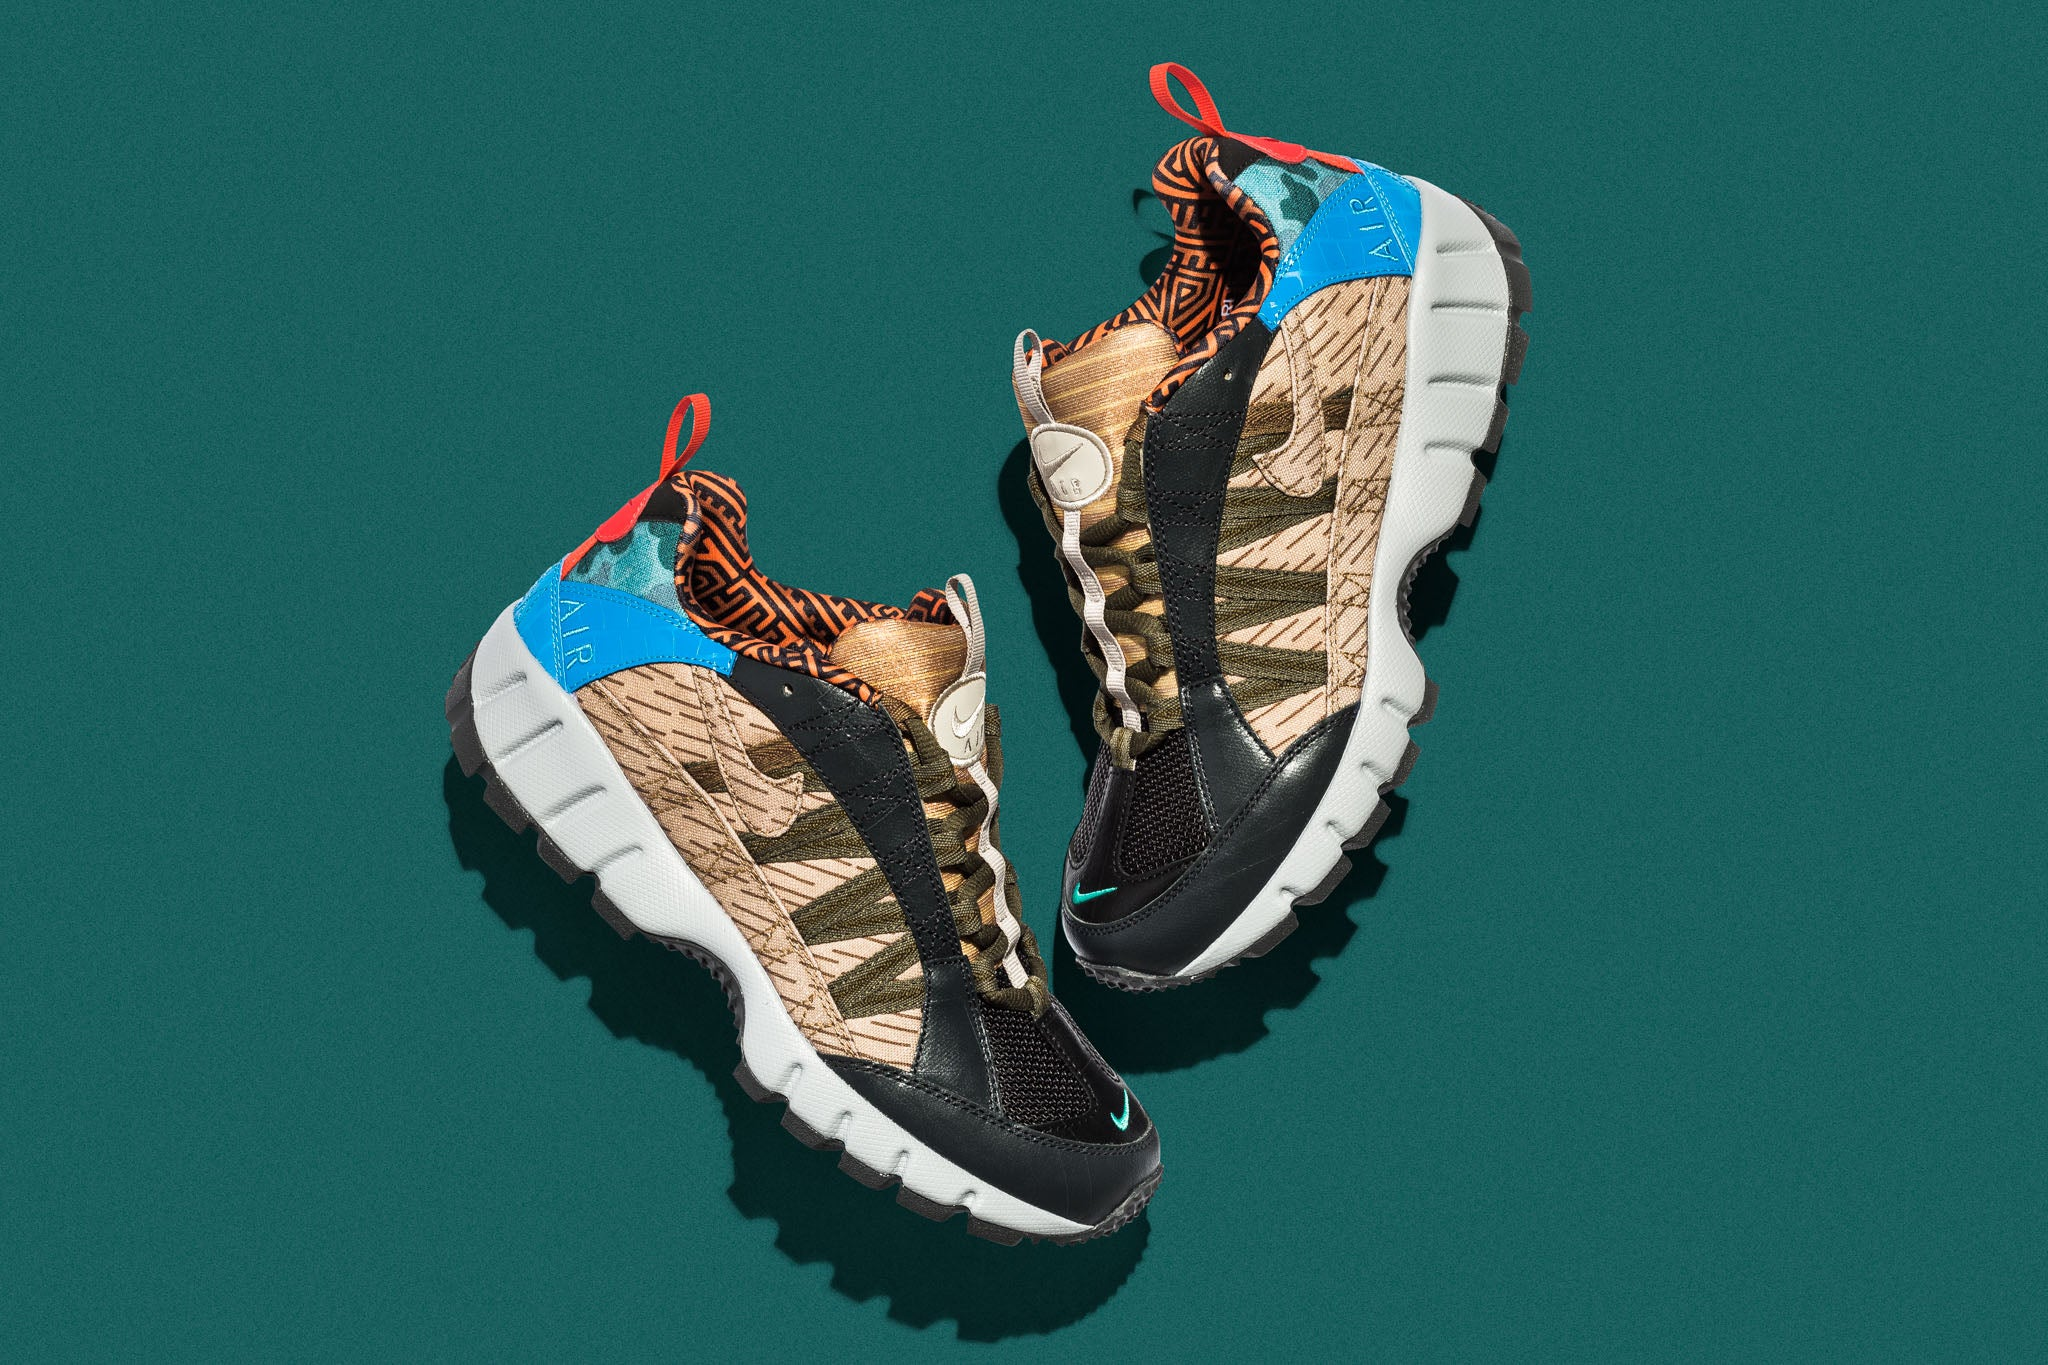 cc7fe8207889 The Nike Air Humara  17 Premium mixes and matches different patterns and  overlays made from canvas